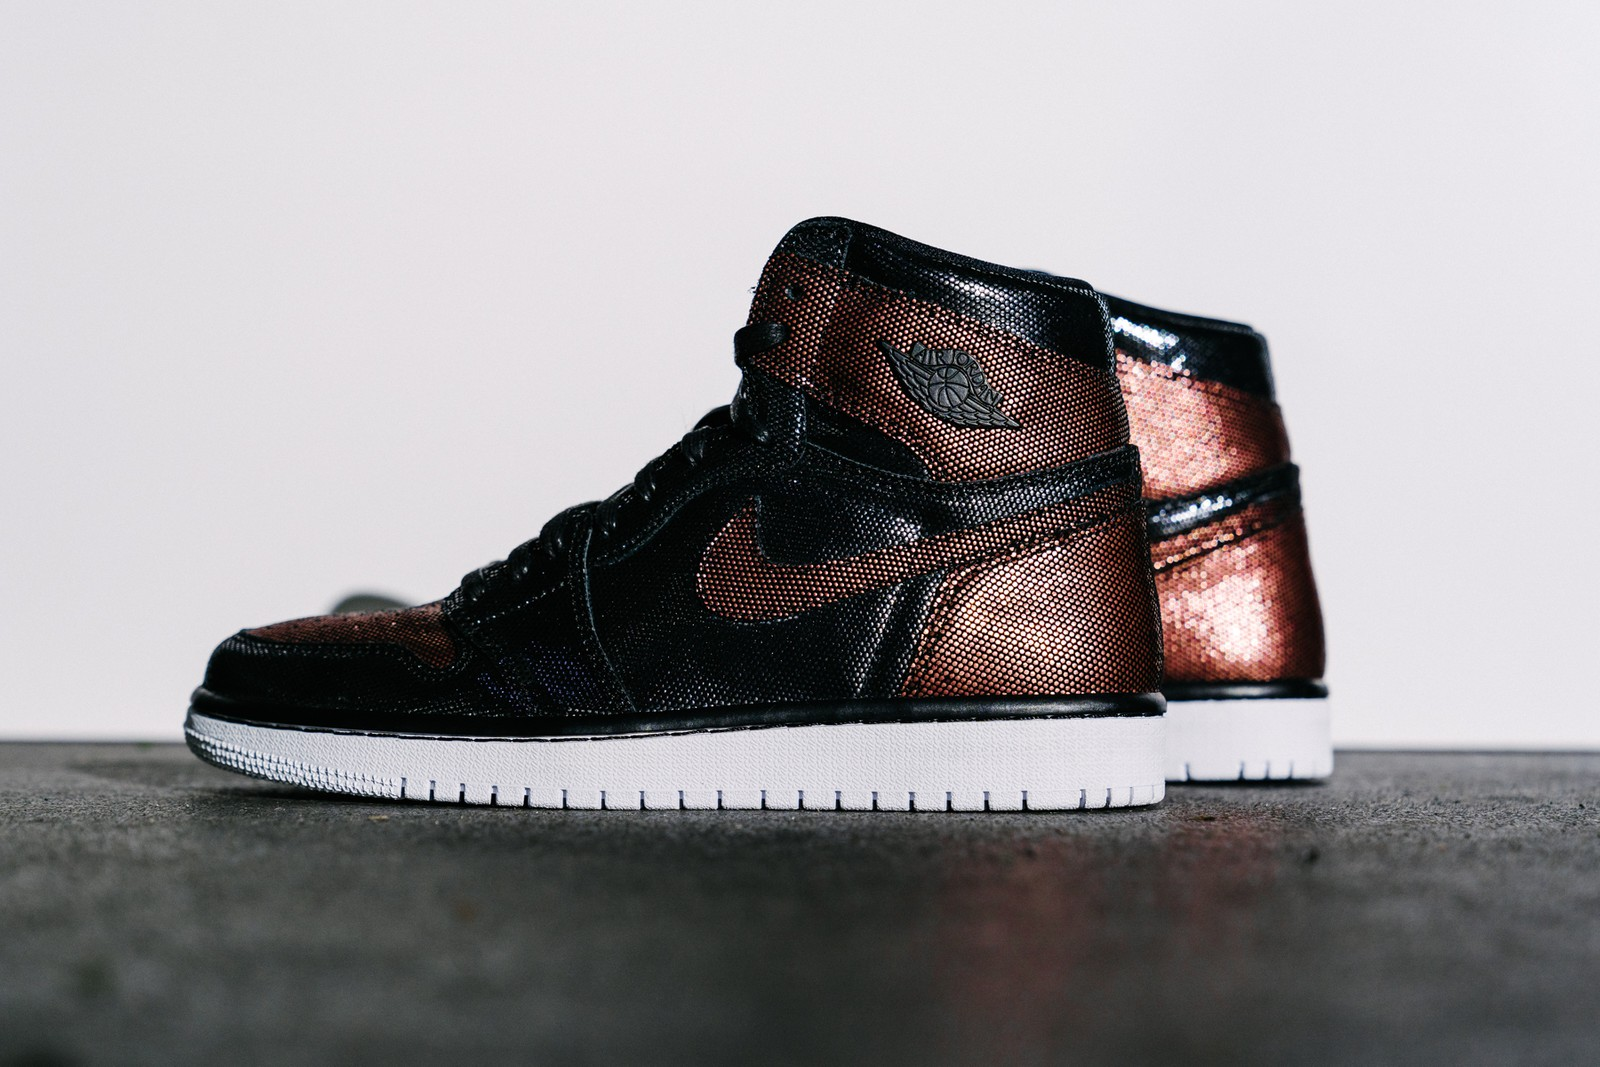 Air Jordan 1 brand Fearless Ones  Collection Holiday 2019 fall winter flyease facetasm edison chen high mid zoom low react ghetto gastro blue the great maison chateau melody ehsani patent leather blue red black shattered backboard orange sky kids mens womens bloodline come fly with me white green brown yellow metallic rose